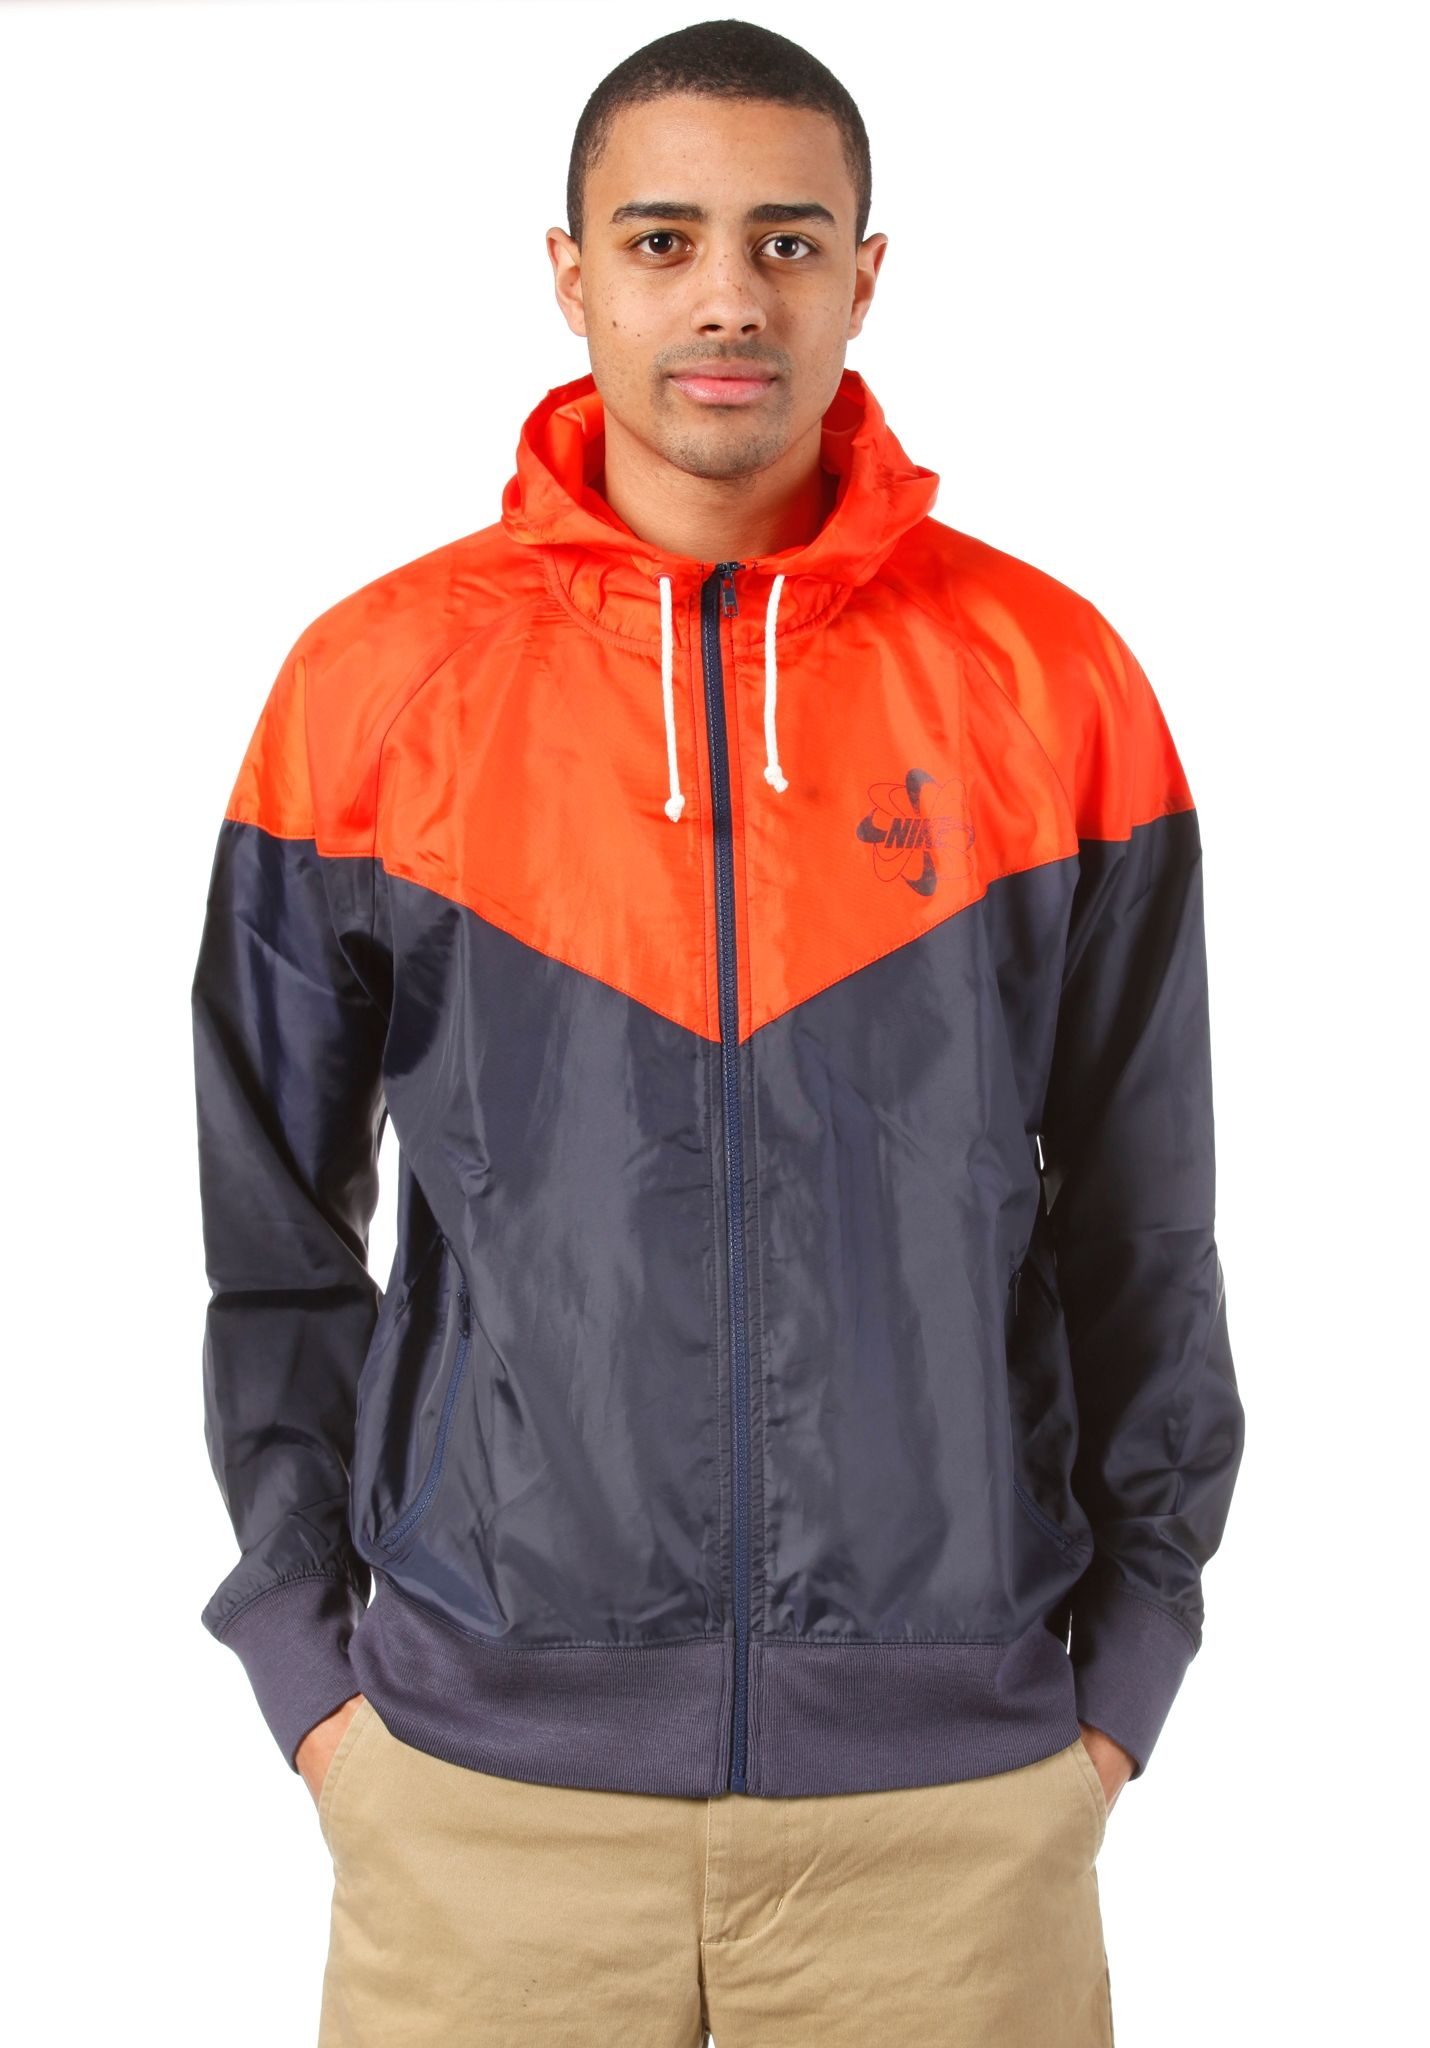 NIKE SPORTSWEAR Ru Vintage Windrunner Jacket - Jacket for Men - Blue - Planet  Sports 886c07211